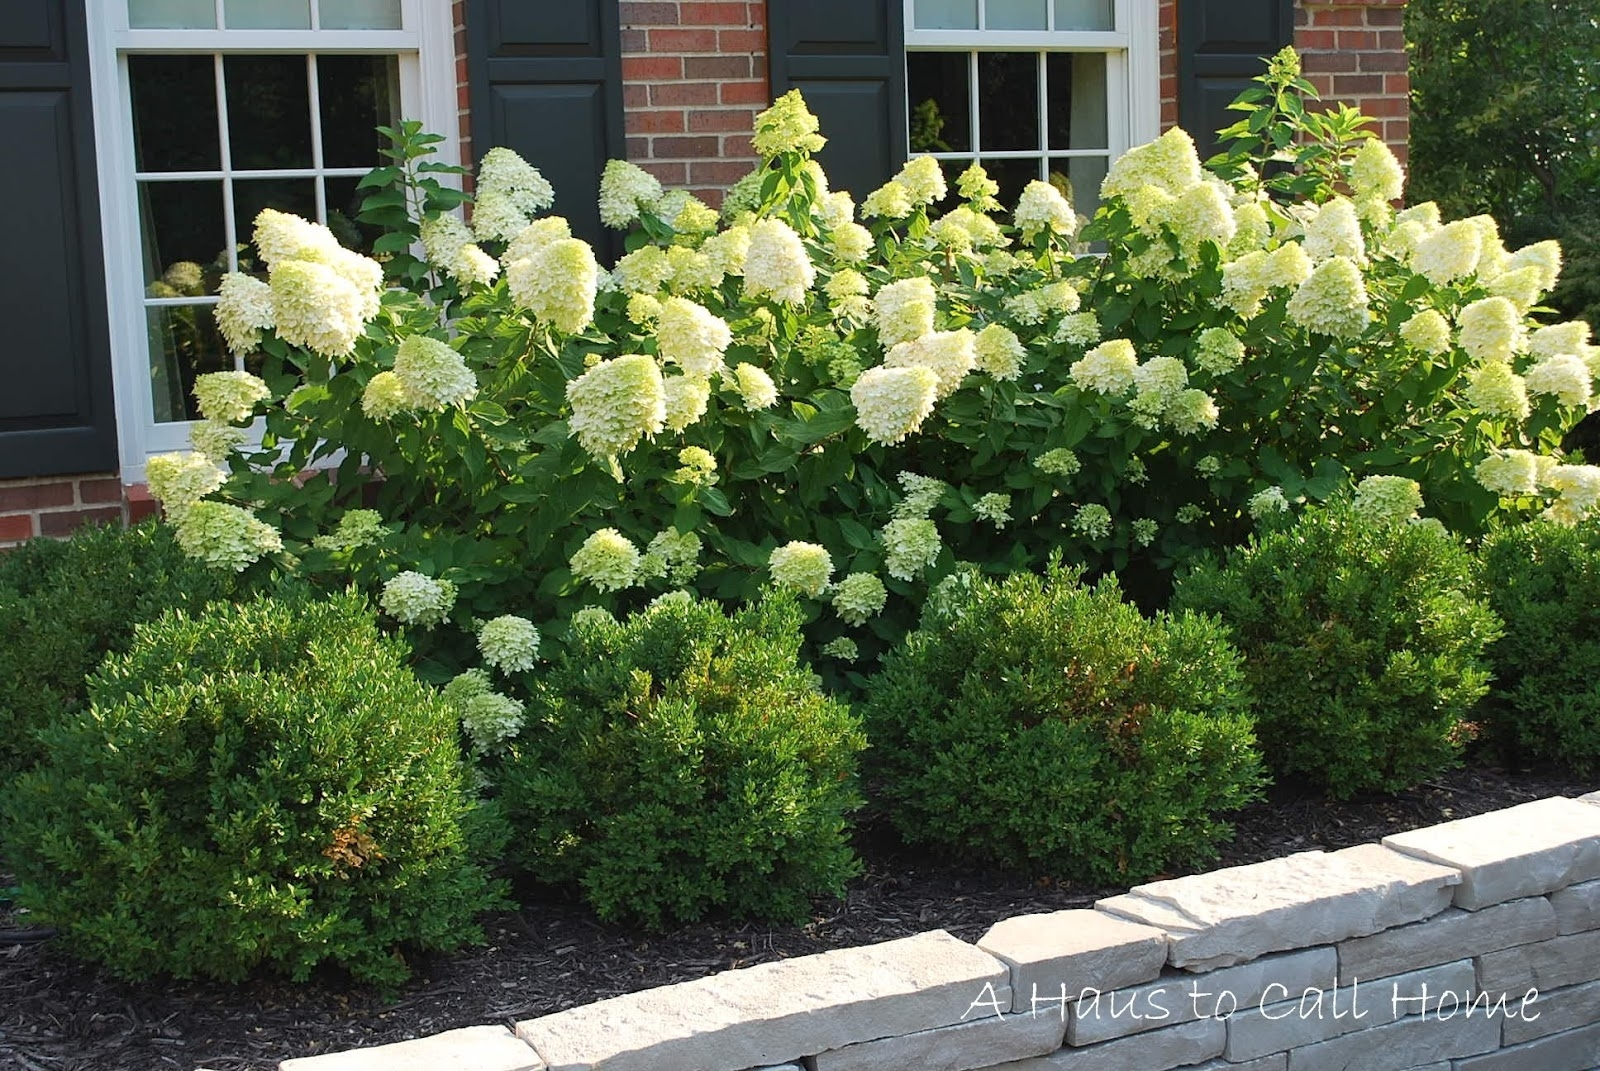 Image of: Limelight Hydrangea Hedge Google Search Backyard Pinterest For Landscaping With Hydrangeas Landscaping With Hydrangeas Ideas